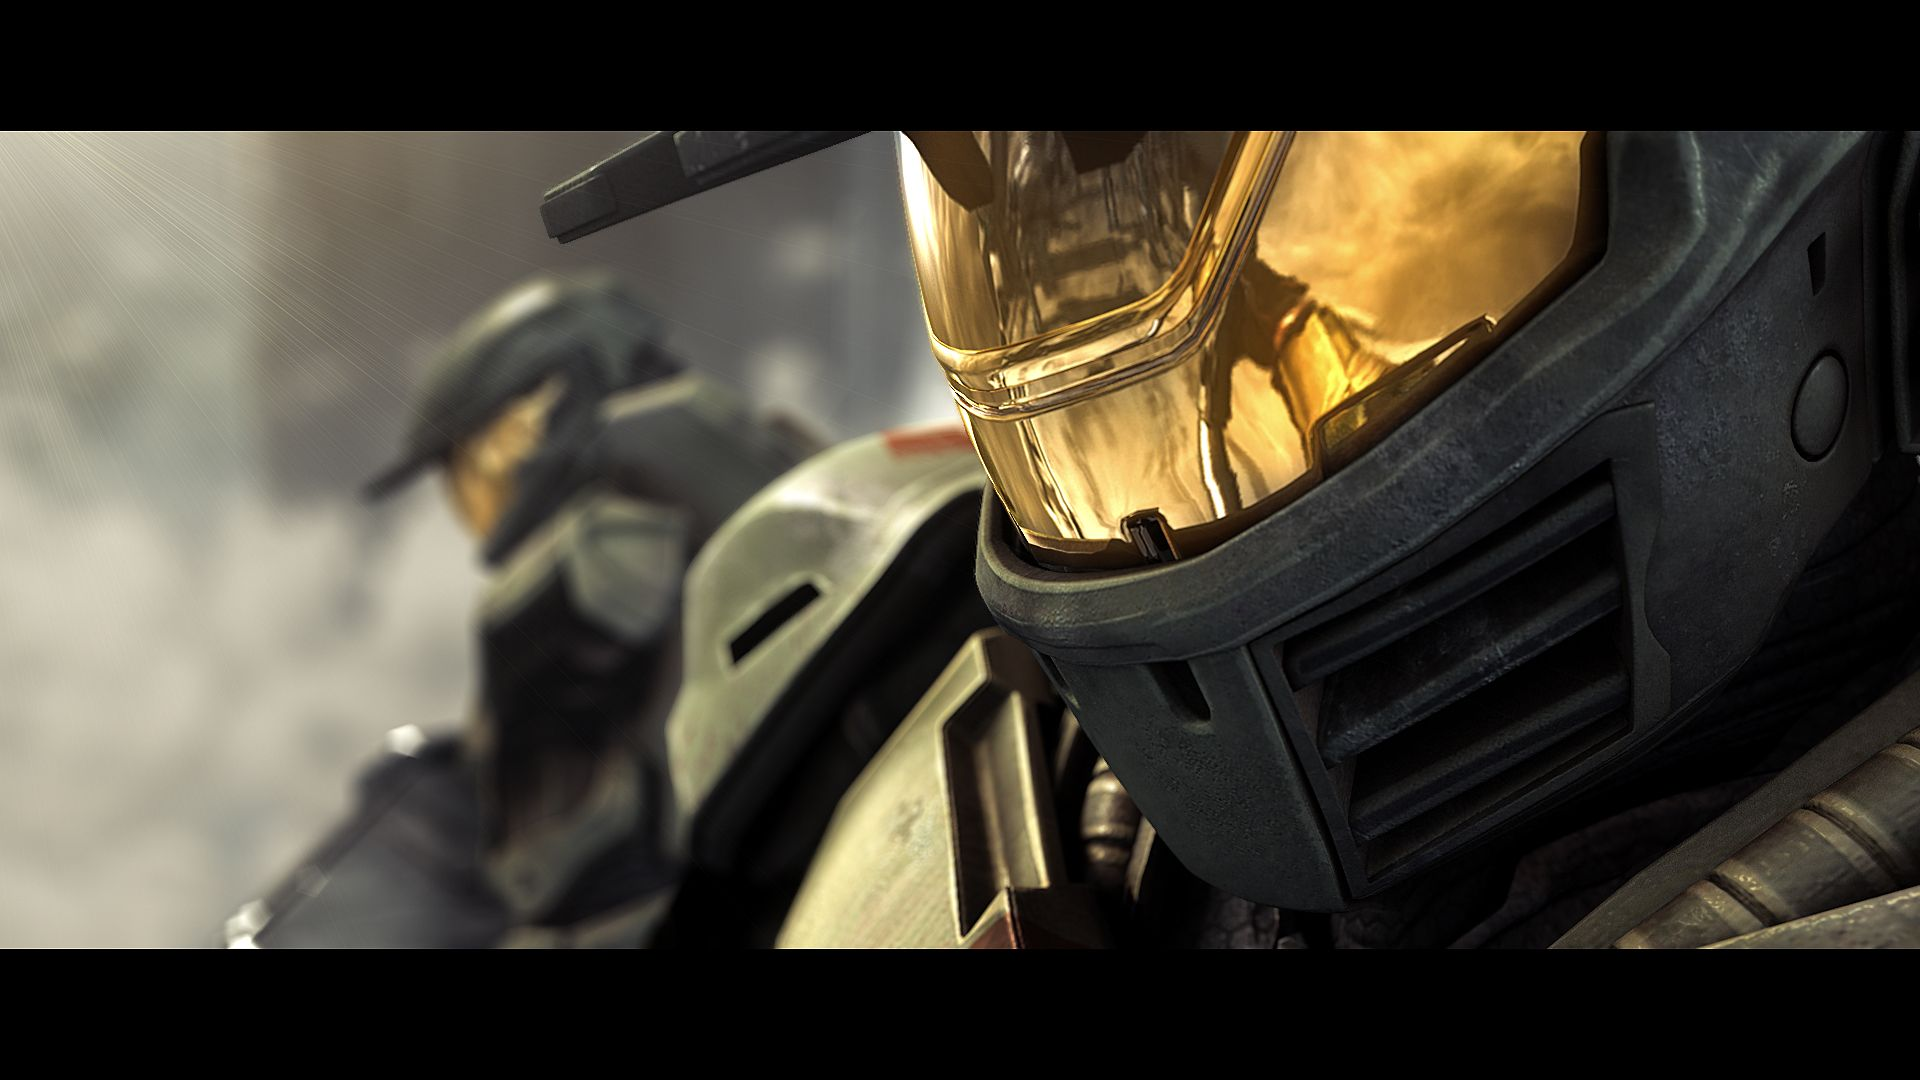 Halo Hd Wallpapers And Backgrounds 1920 1080 Halo Hd Wallpapers 40 Wallpapers Adorable Wallpapers Halo Reach Halo Master Chief